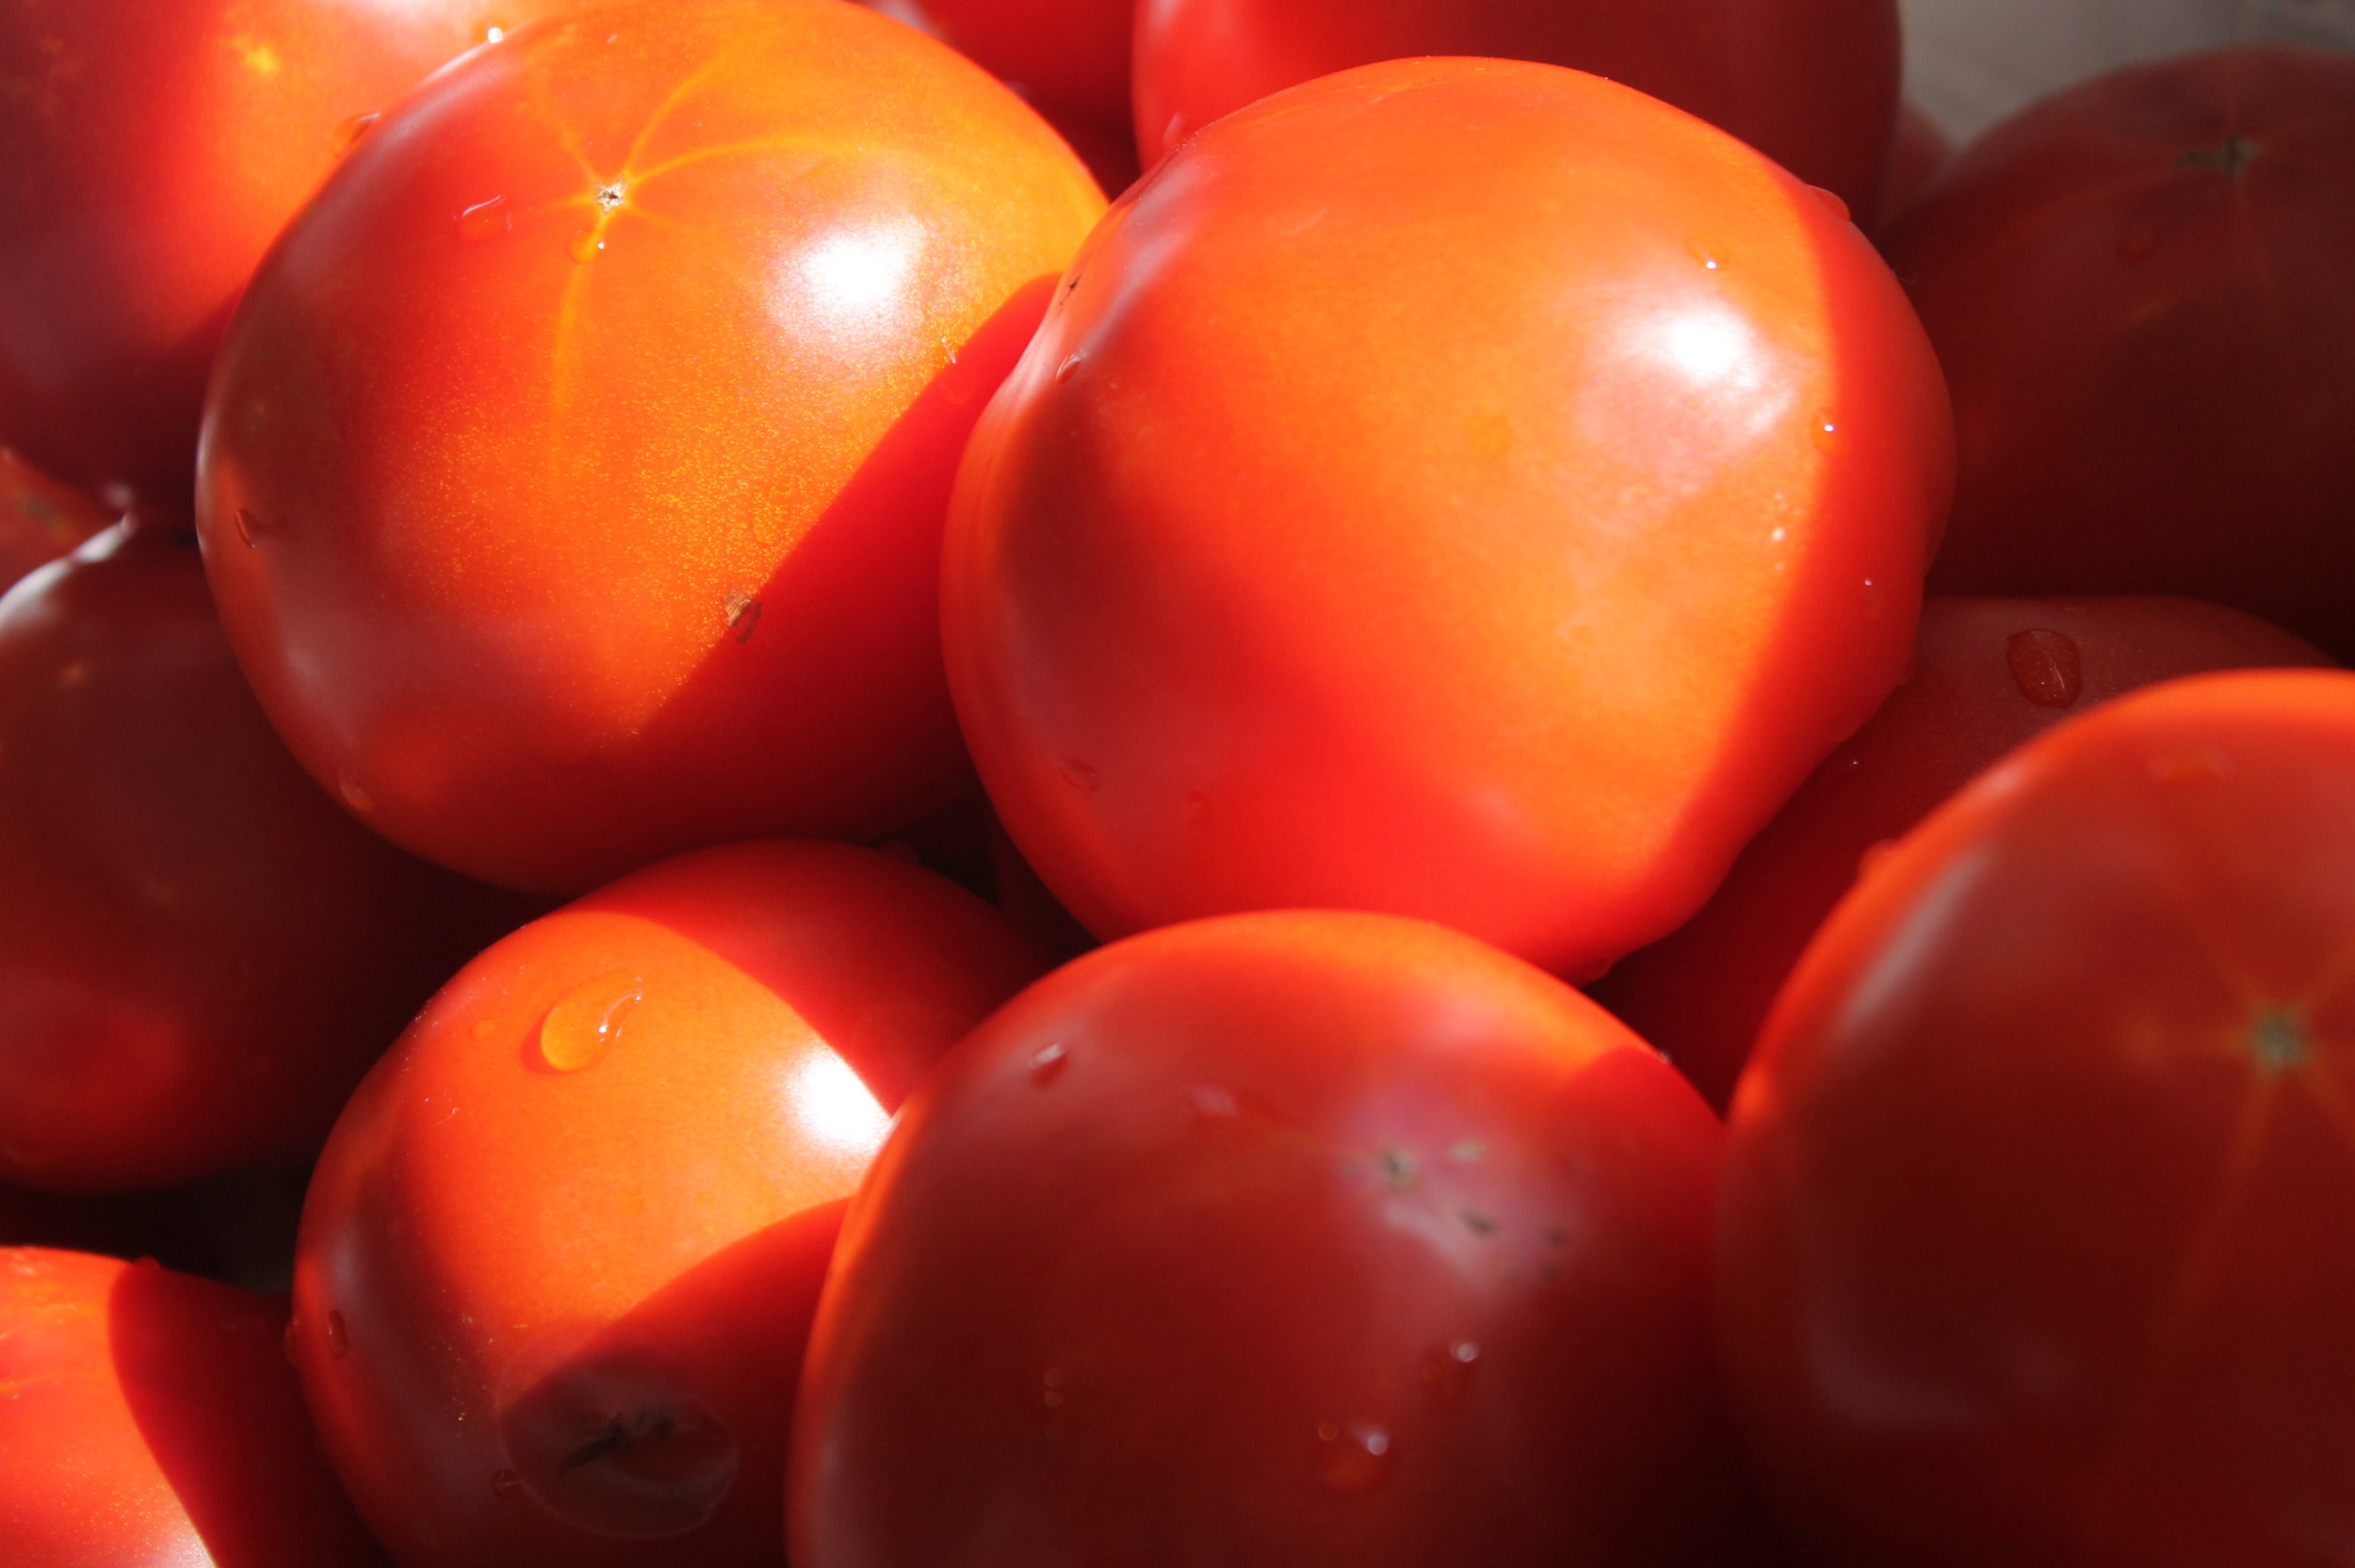 More and More Tomatoes.